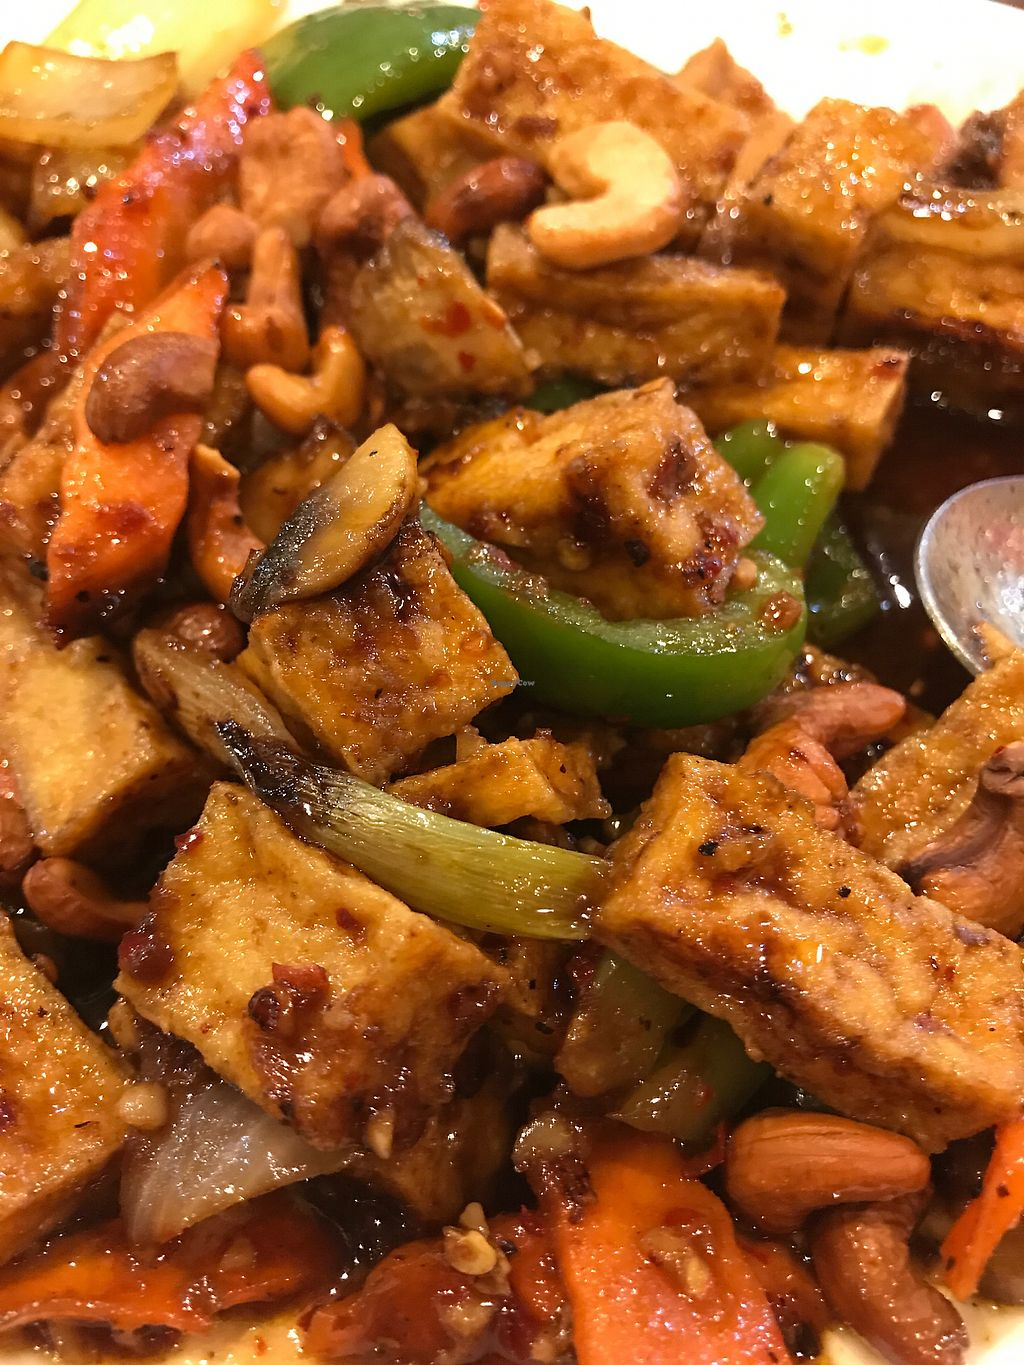 """Photo of Basil House  by <a href=""""/members/profile/HaileyMacd"""">HaileyMacd</a> <br/>Cashew Lovers with tofu <br/> September 18, 2017  - <a href='/contact/abuse/image/101220/305808'>Report</a>"""